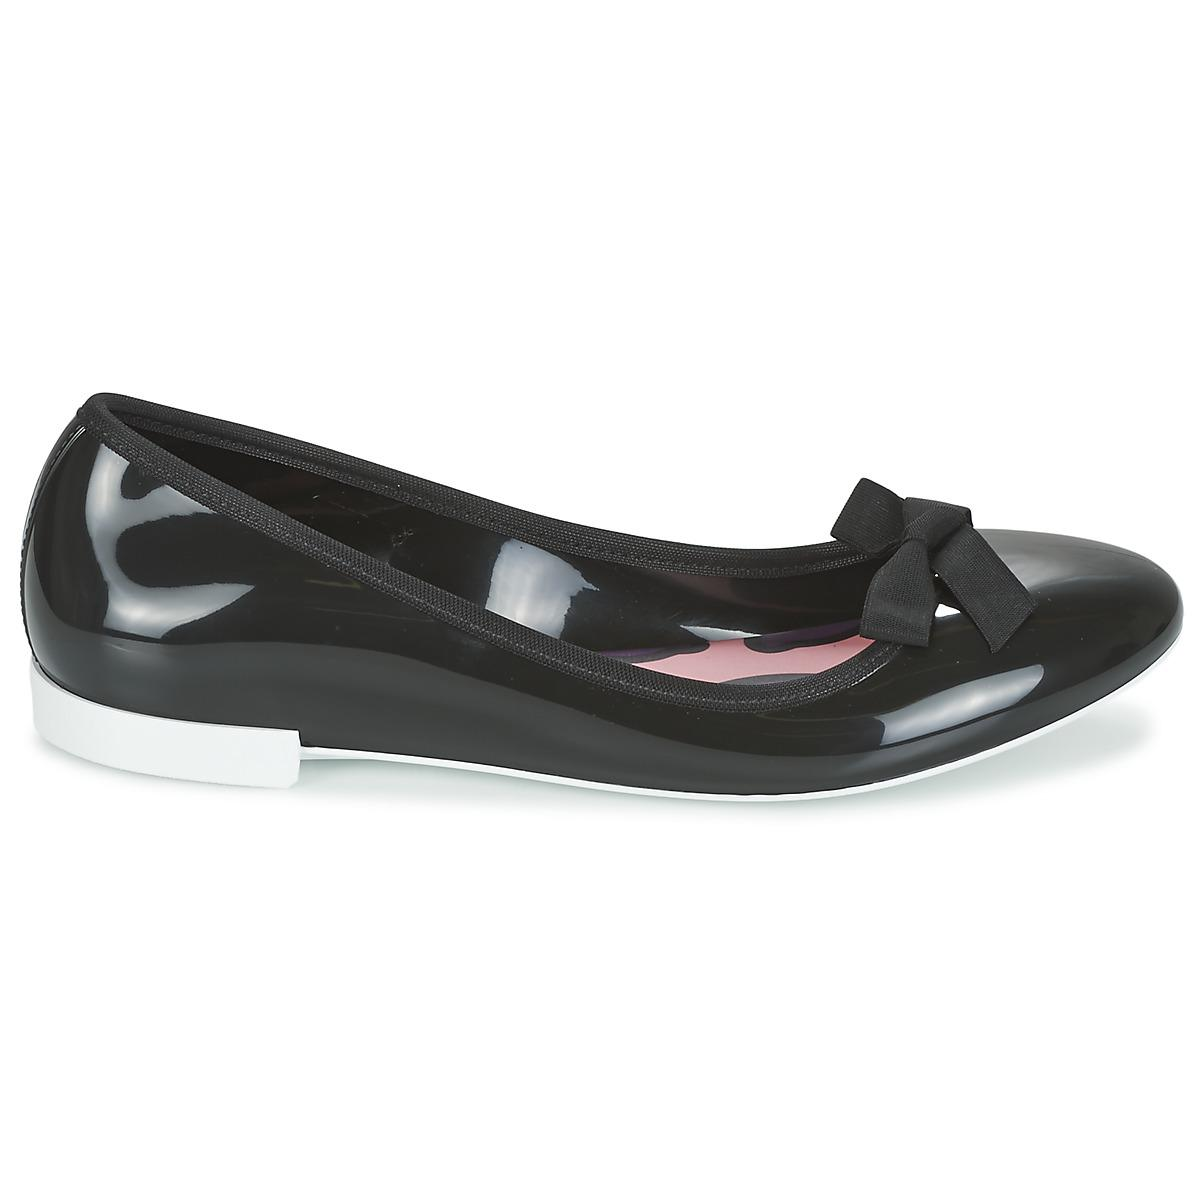 hot sale online 5d7ec 3221e lemon-jelly-black-Bow-Womens-Shoes-pumps-Ballerinas-In-Black.jpeg